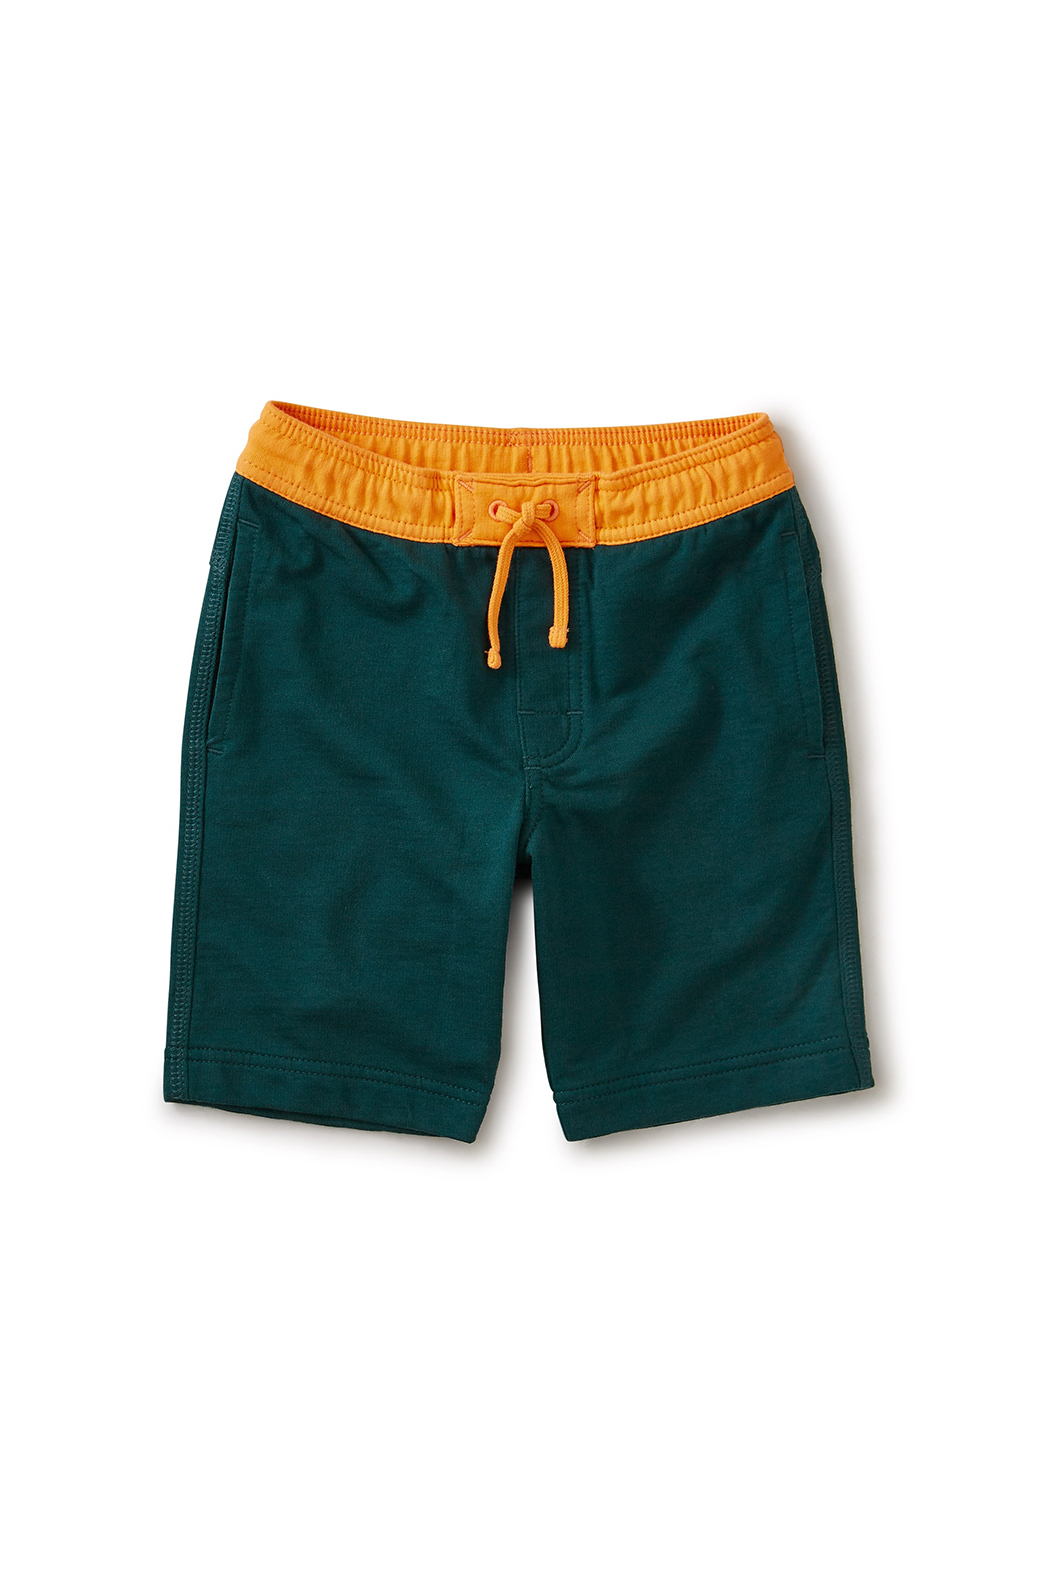 Tea Collection Boardies Surf Shorts - Main Image